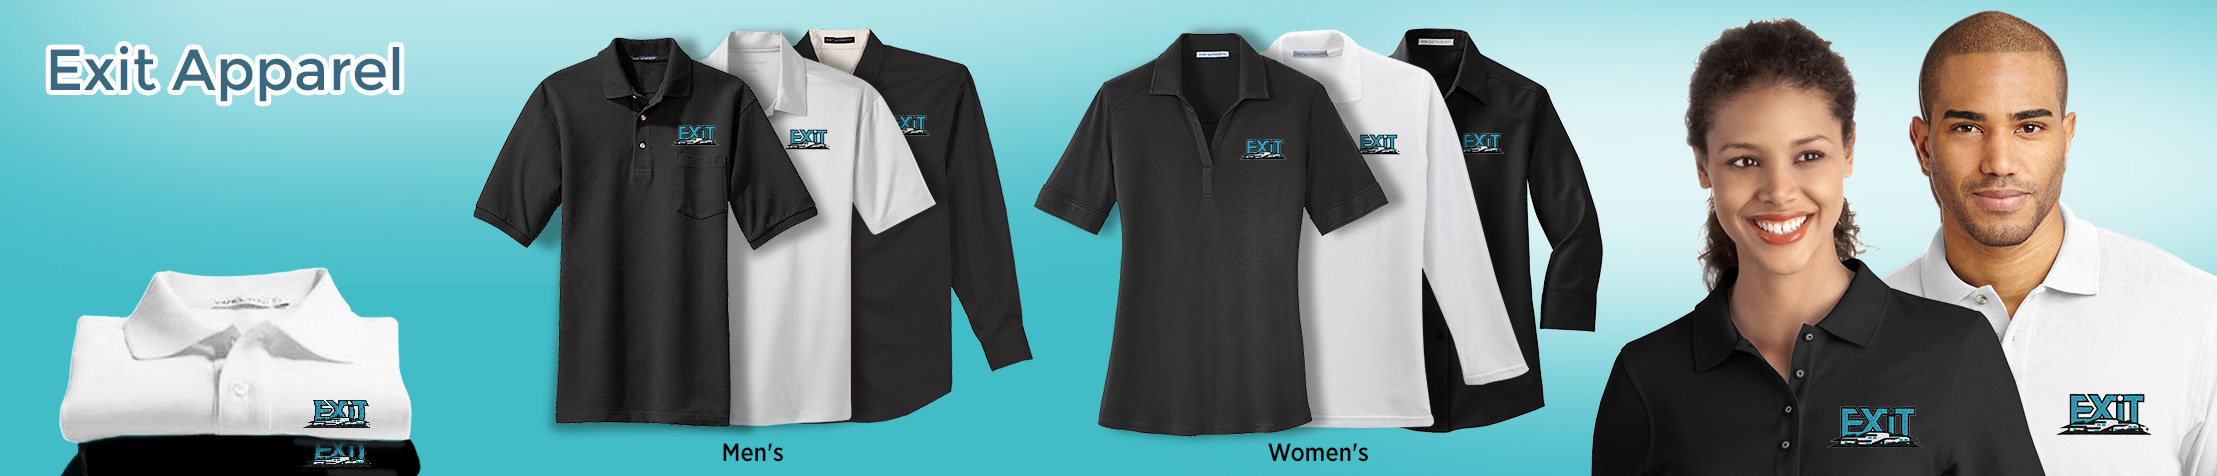 Exit Realty Apparel - Exit Realty approved vendor logo apparel | Men's & Women's shirts | BestPrintBuy.com